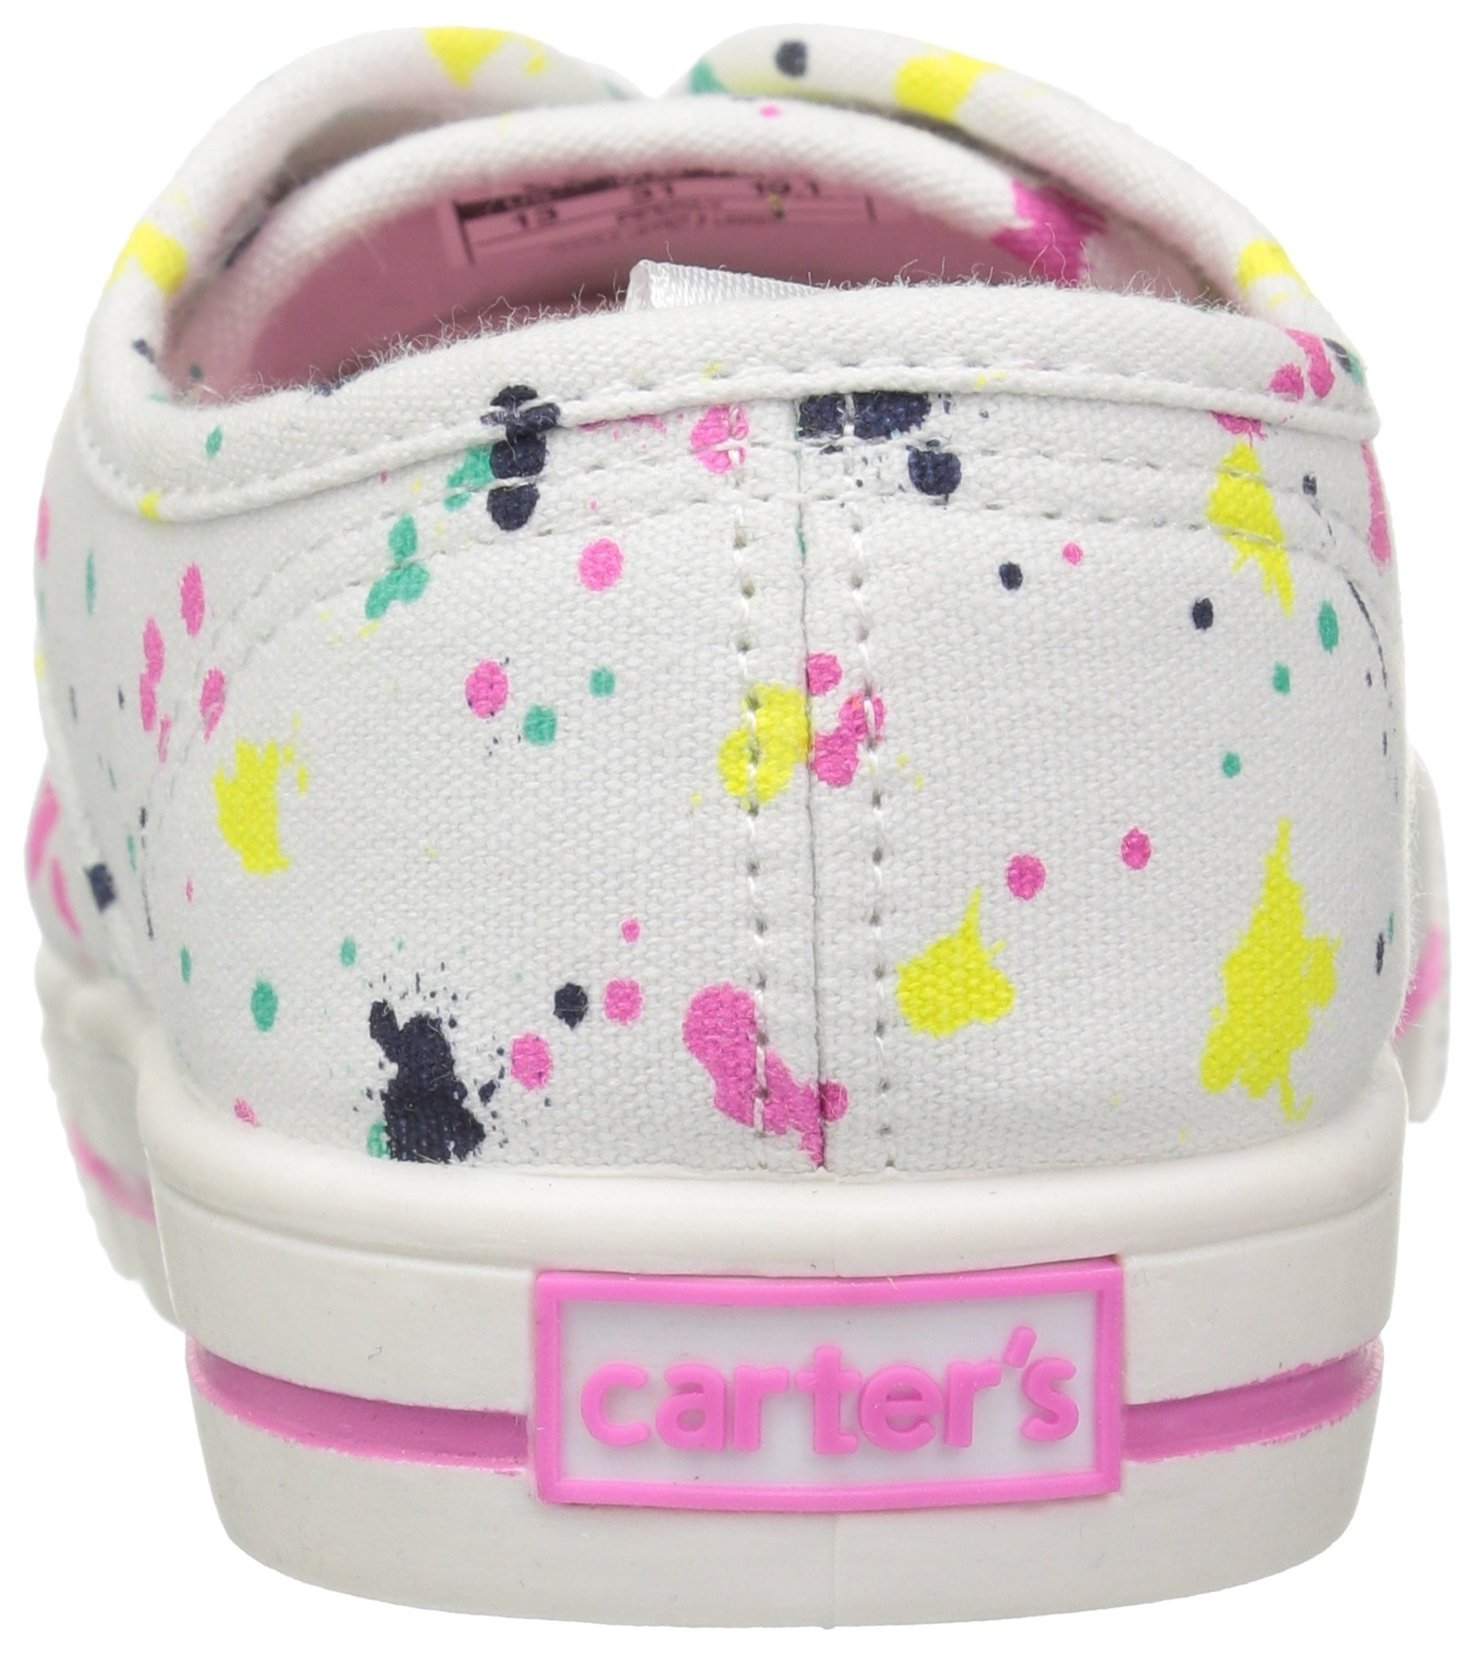 Carter's Piper Girl's Casual Sneaker, White/Print, 3 M US Little Kid by Carter's (Image #2)